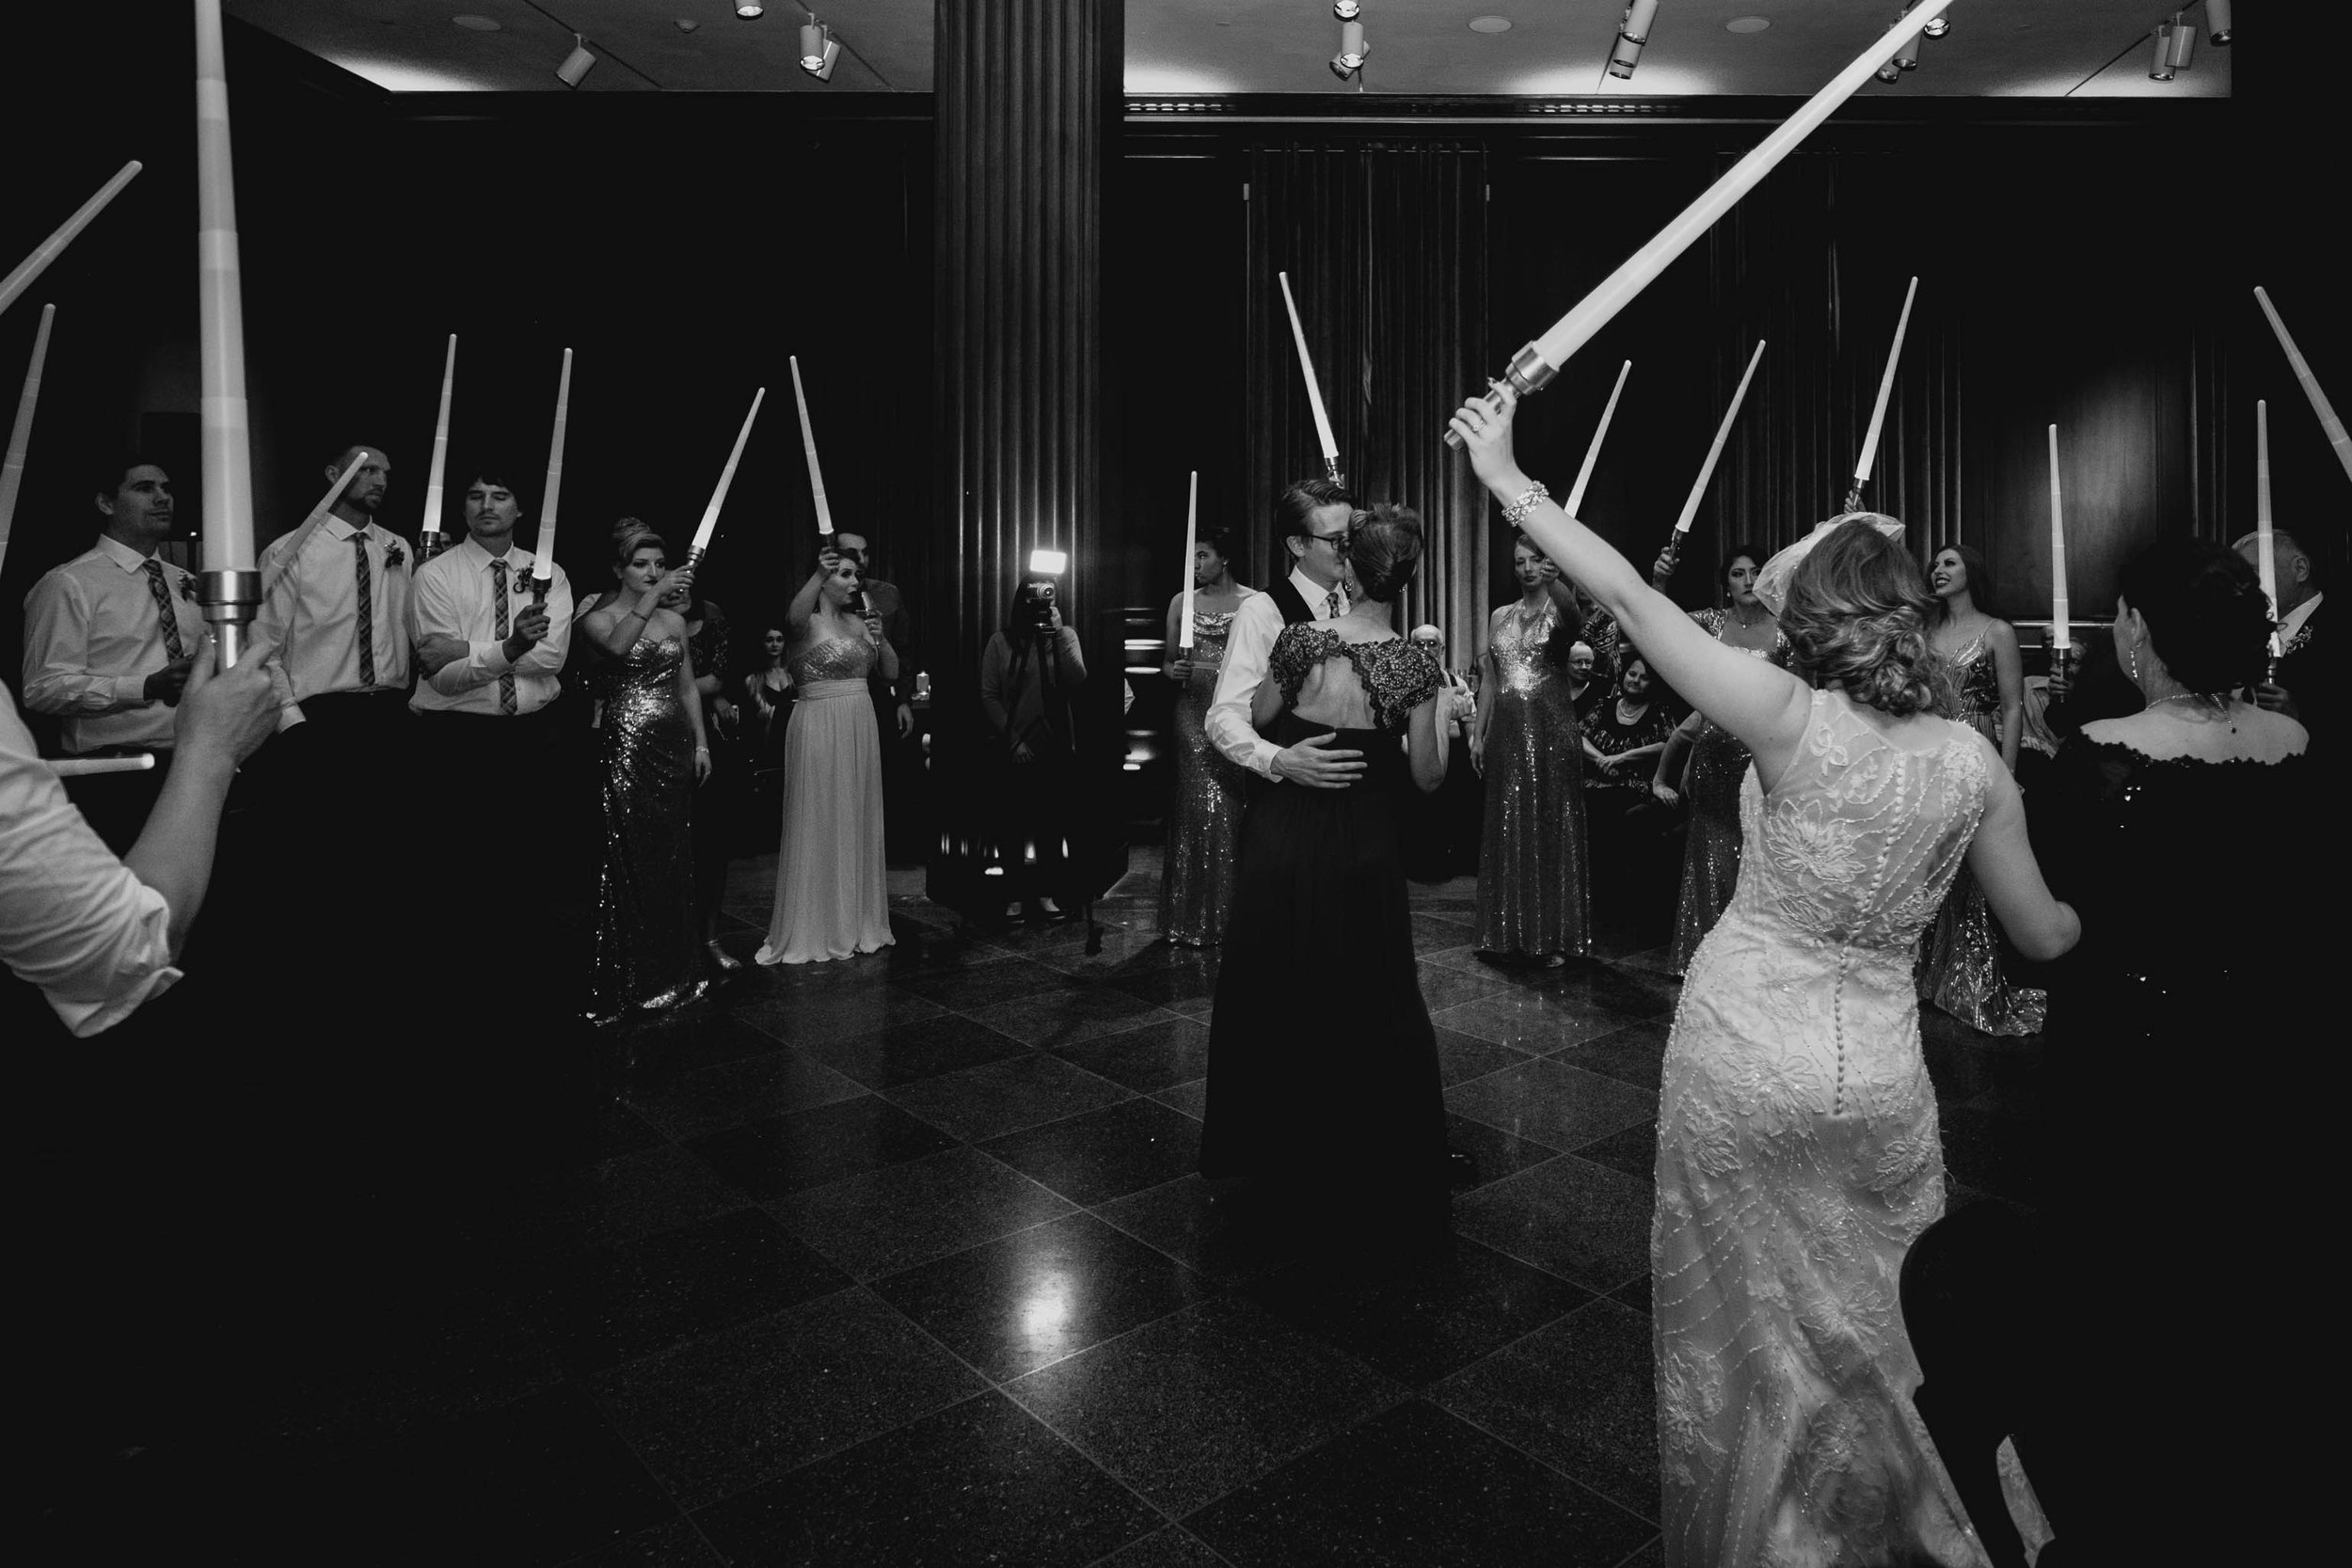 21c-hotel-durham-offbeat-wedding-star-wars-themed-reception.jpg